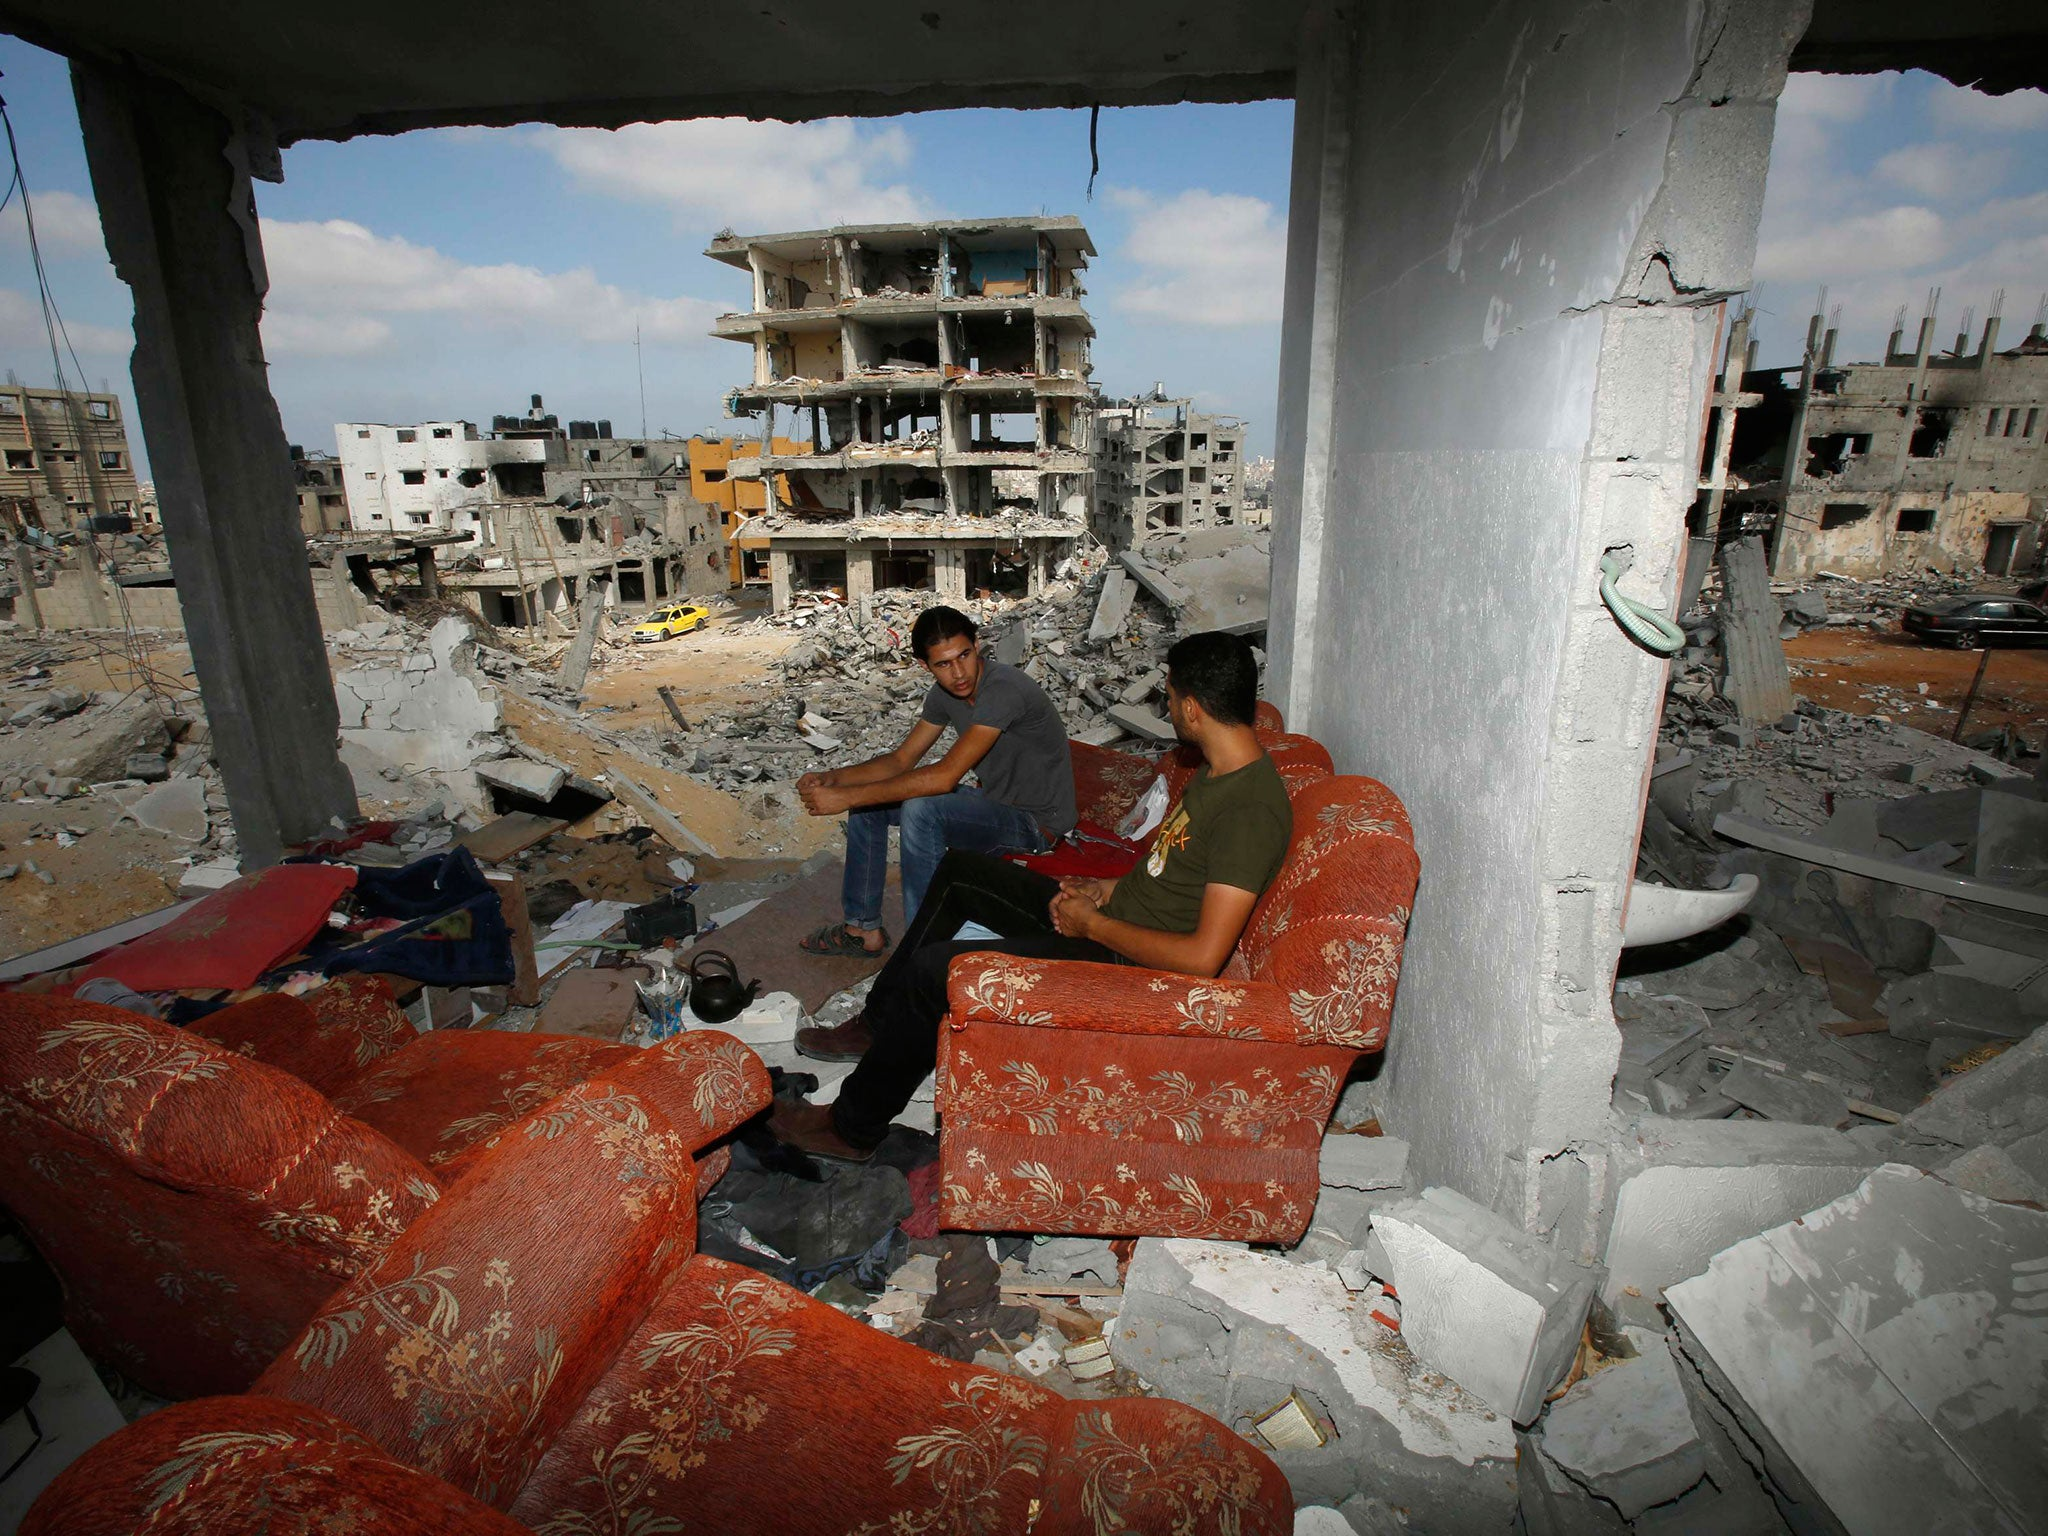 Method and Madness: The hidden story of Israel's assaults on Gaza by